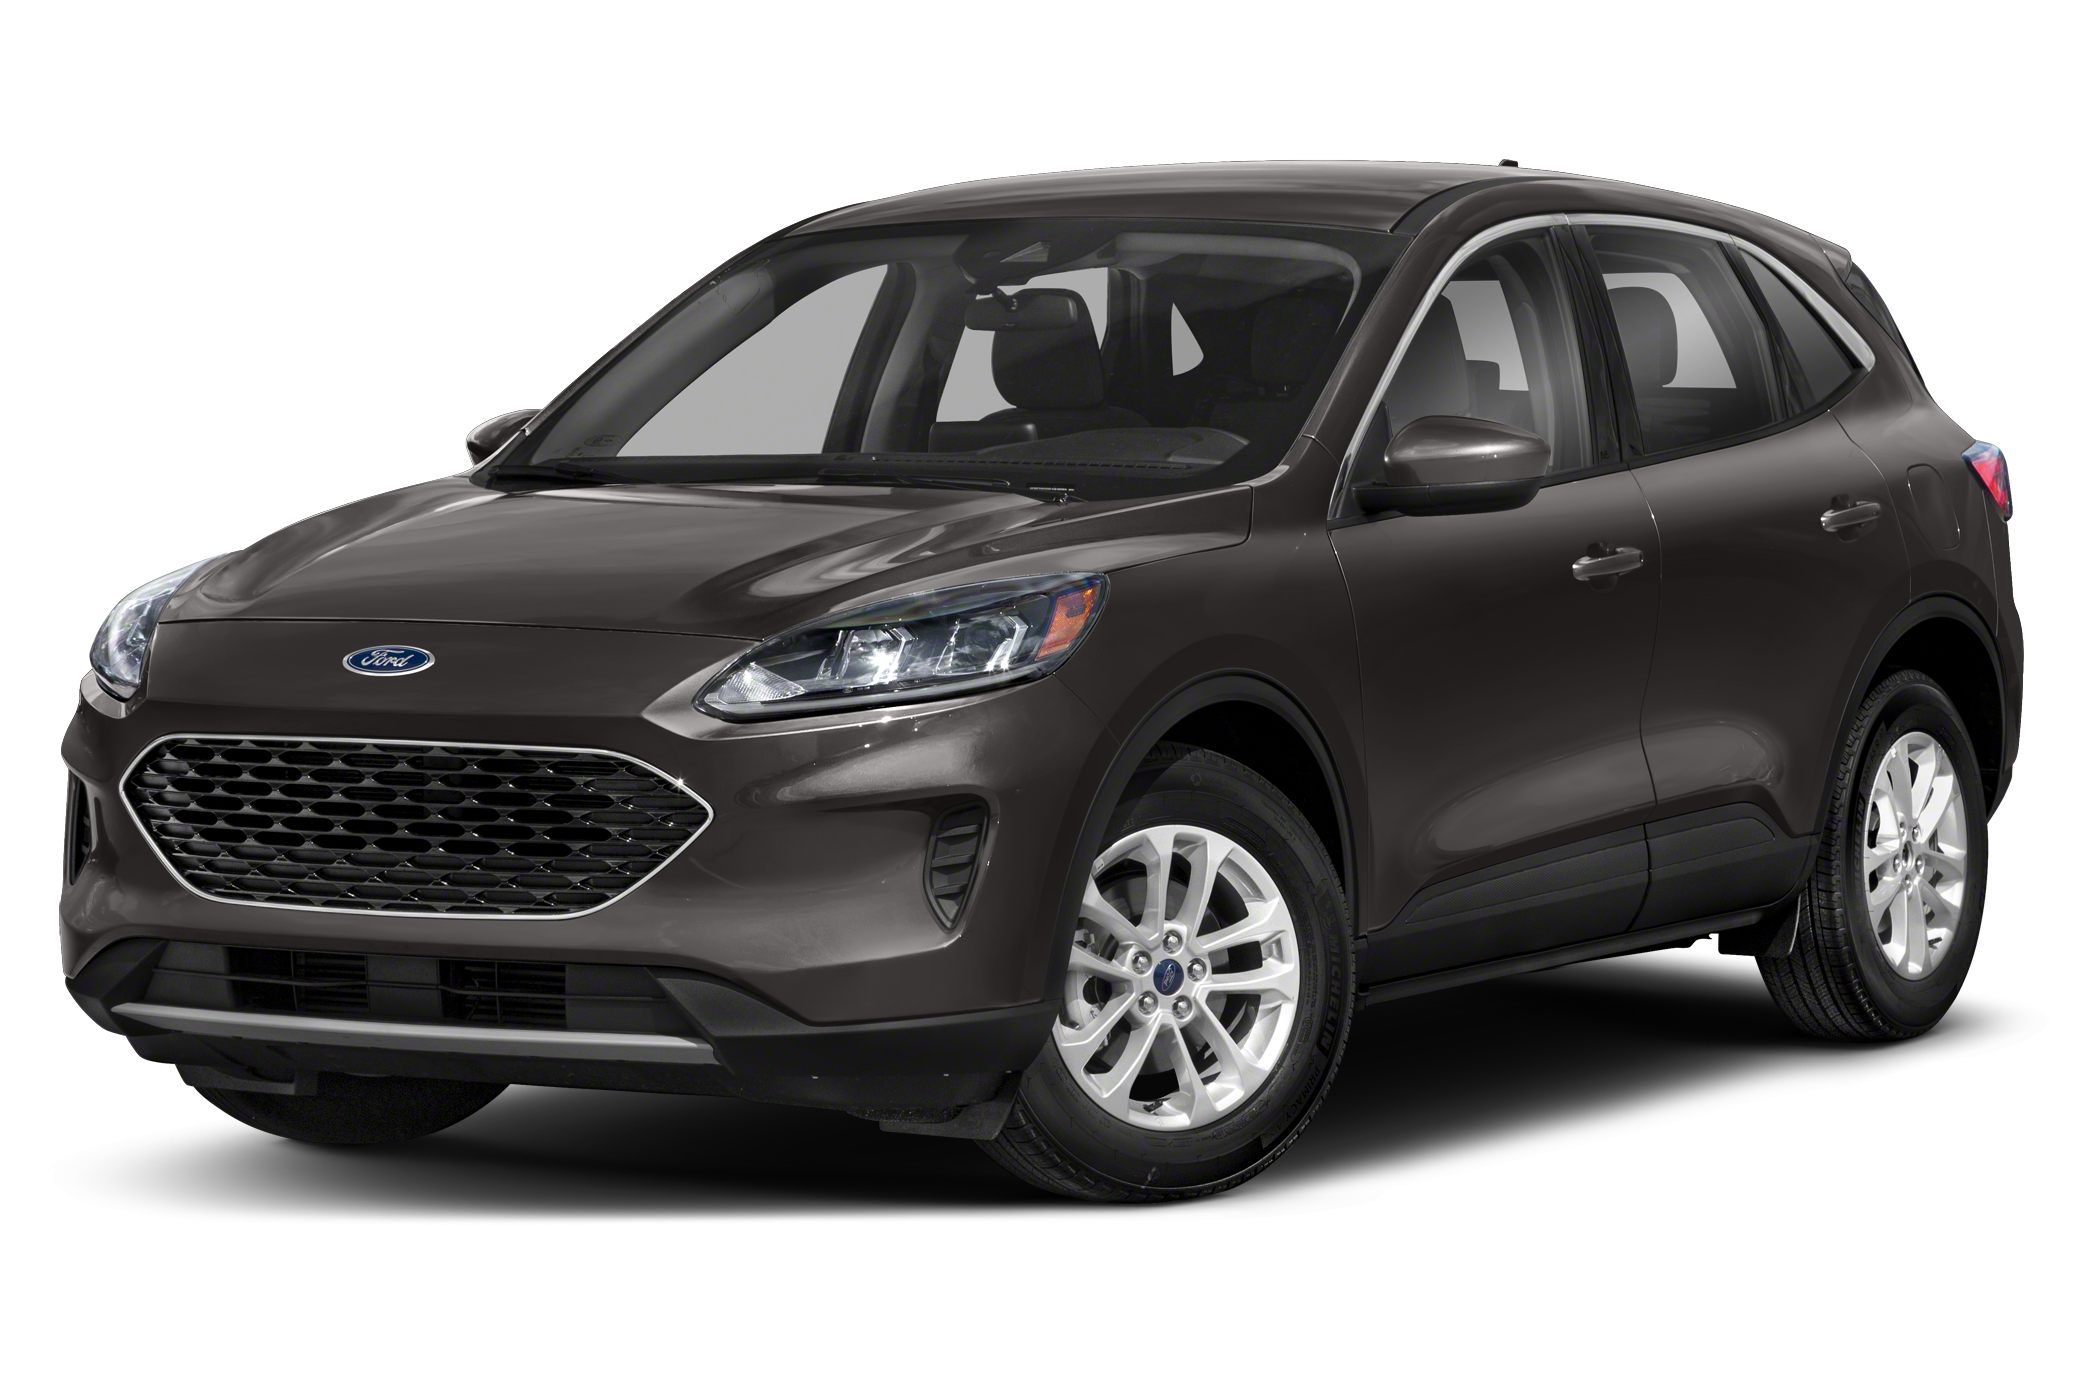 2020 Ford Escape, Lincoln Corsair ace crash tests, earn Top Safety Pick from IIHS